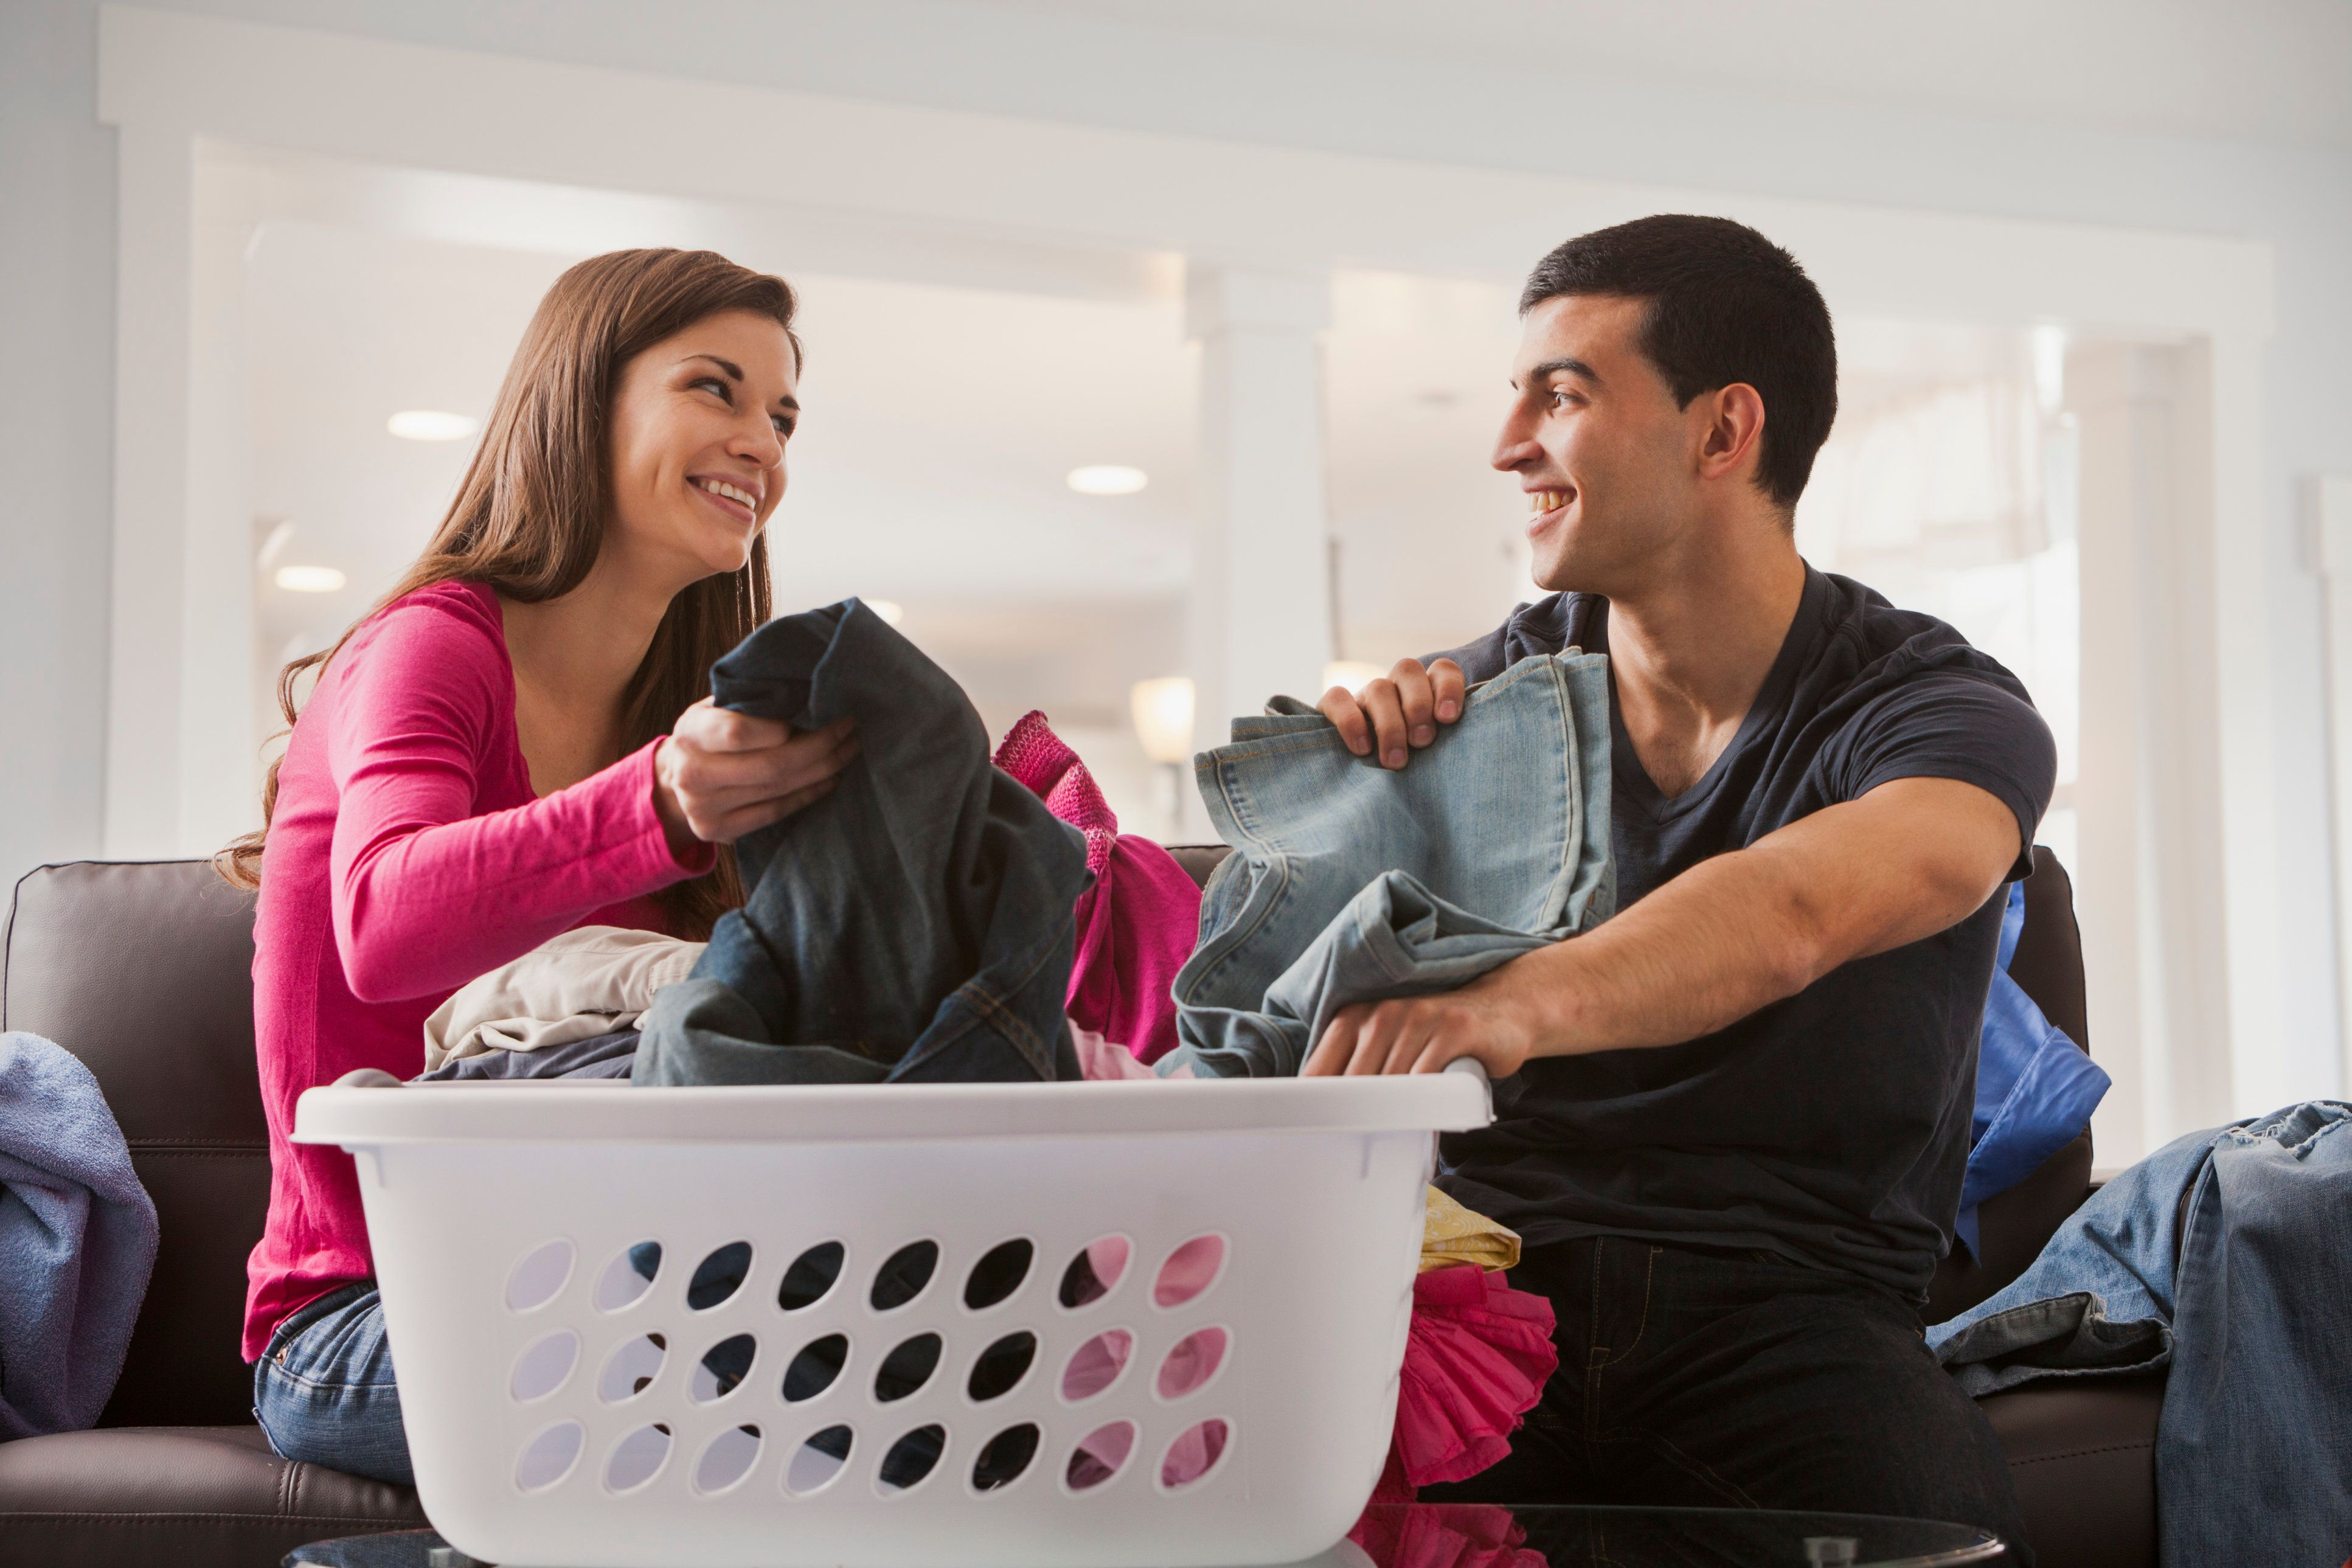 Housework for males